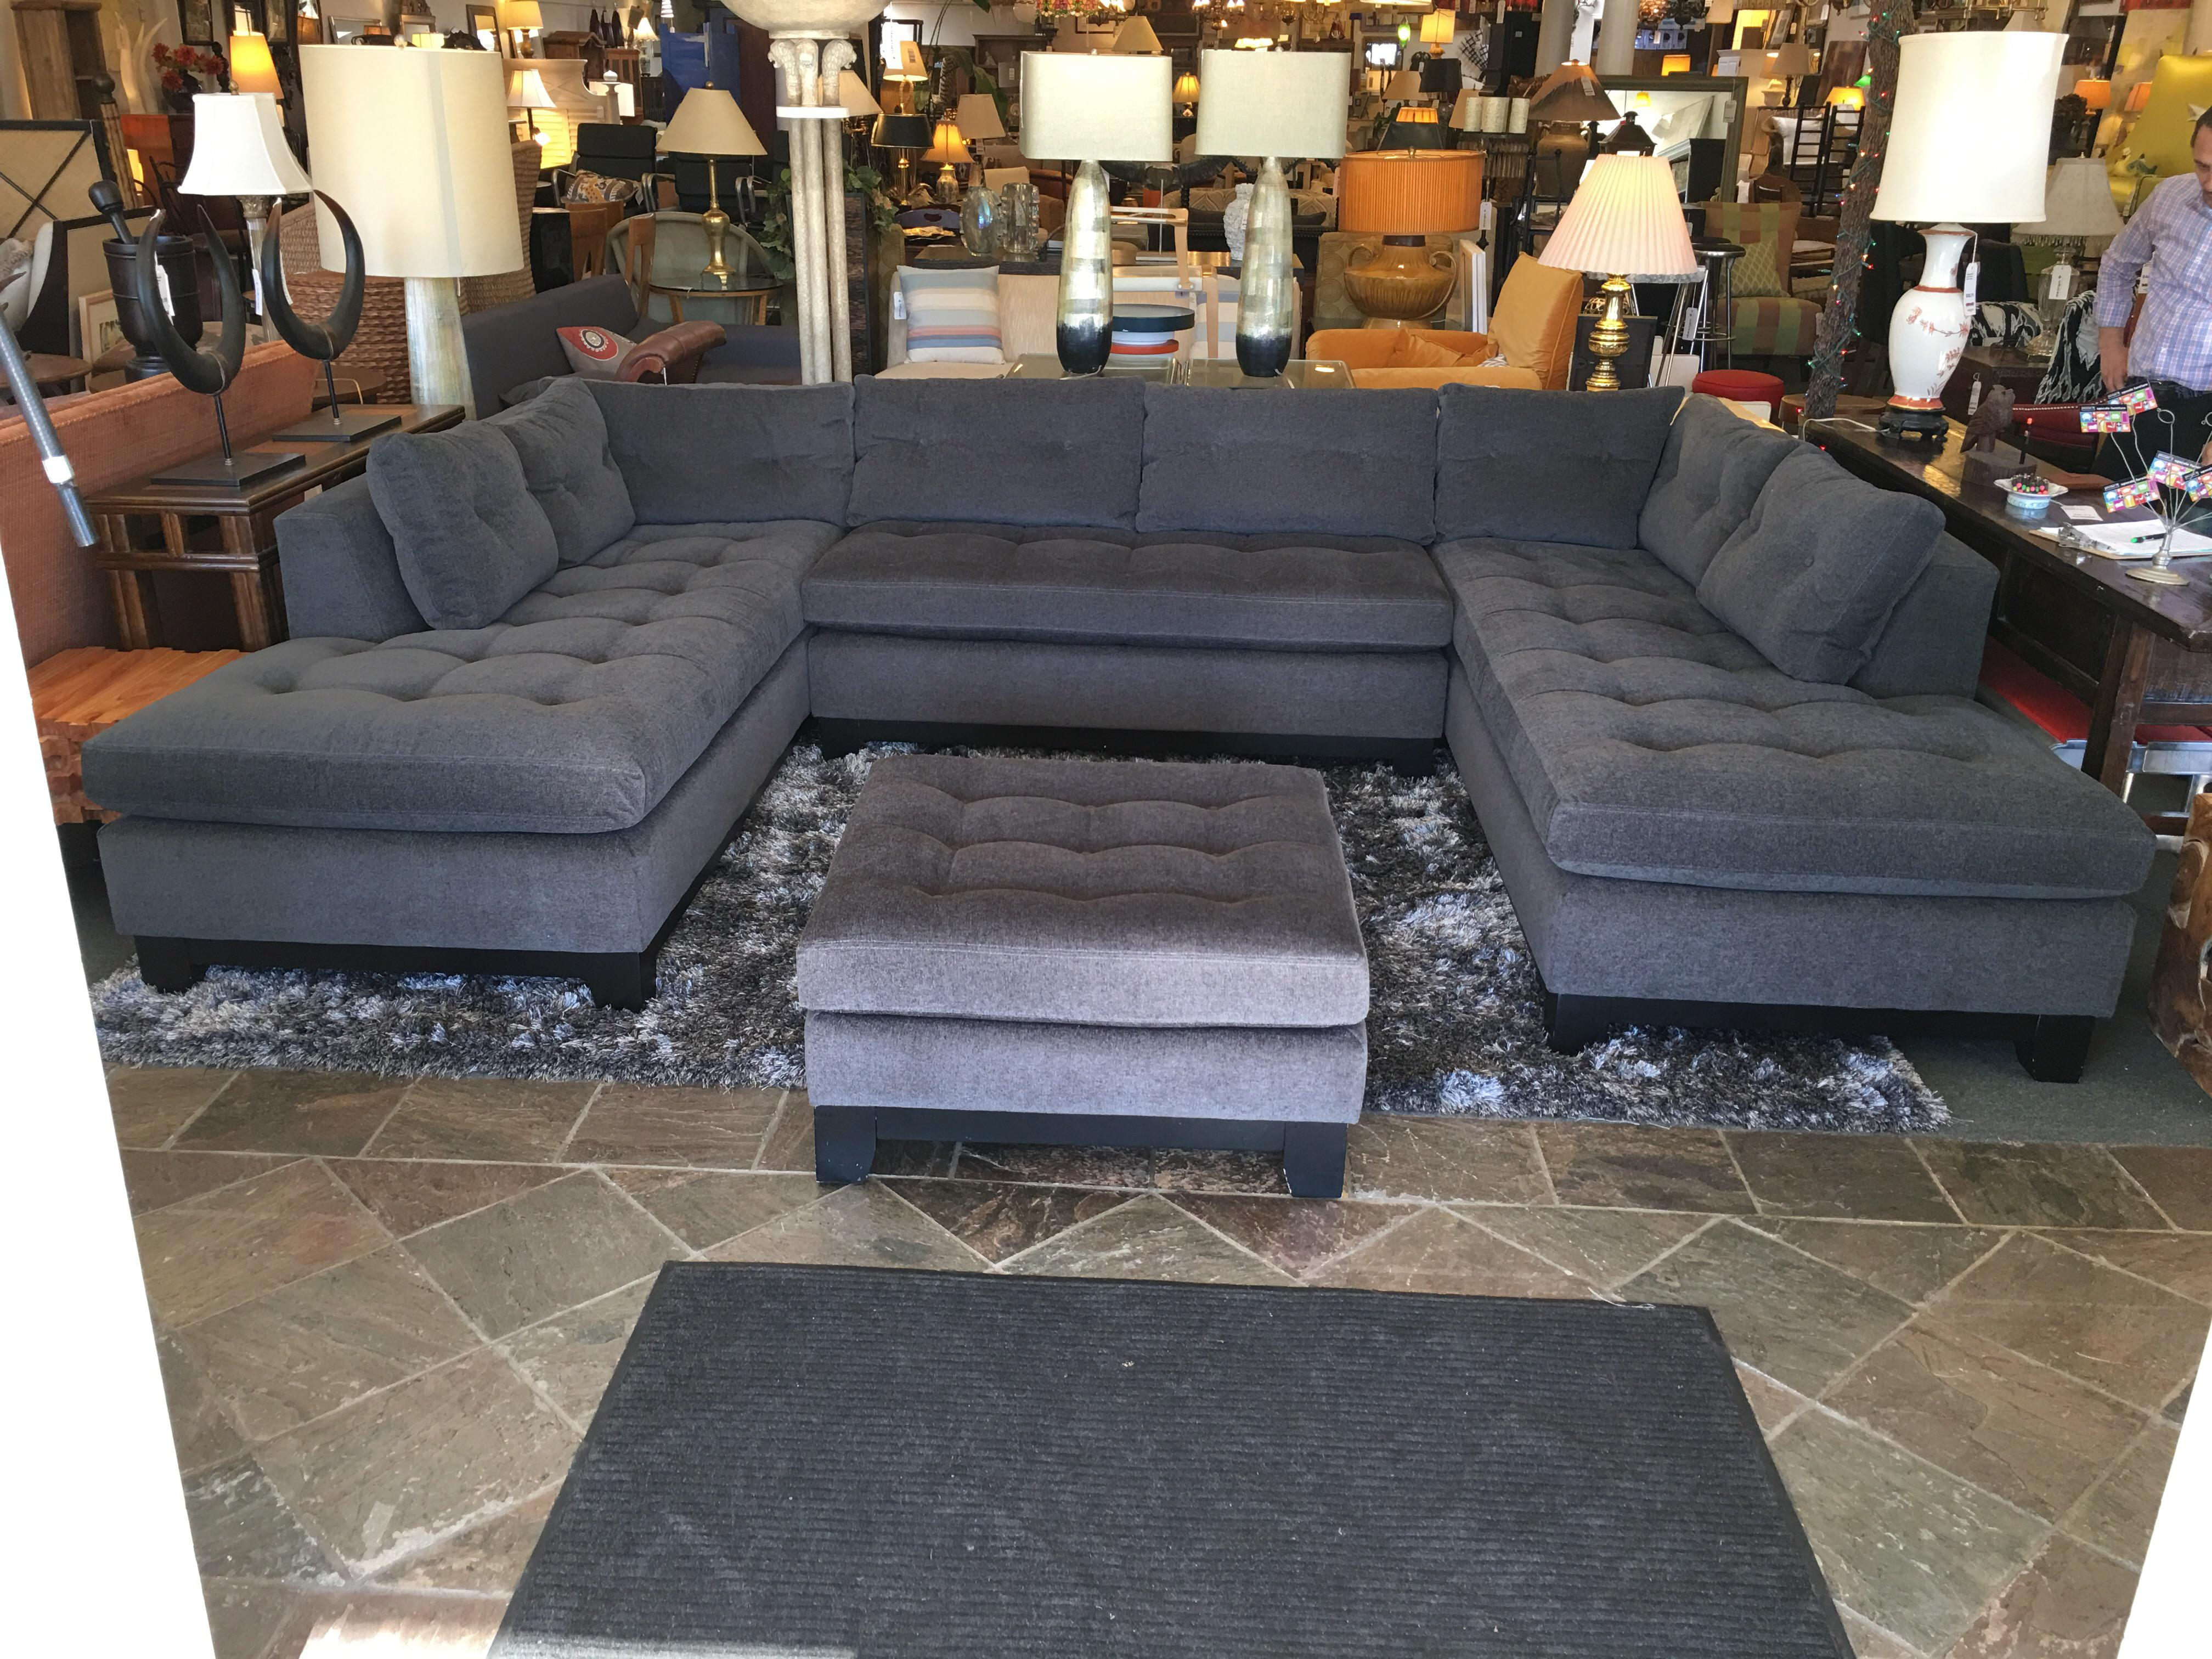 Design Plus Gallery Presents A Beautiful, Large Sectional Sofa Big Enough  To Hold A Group